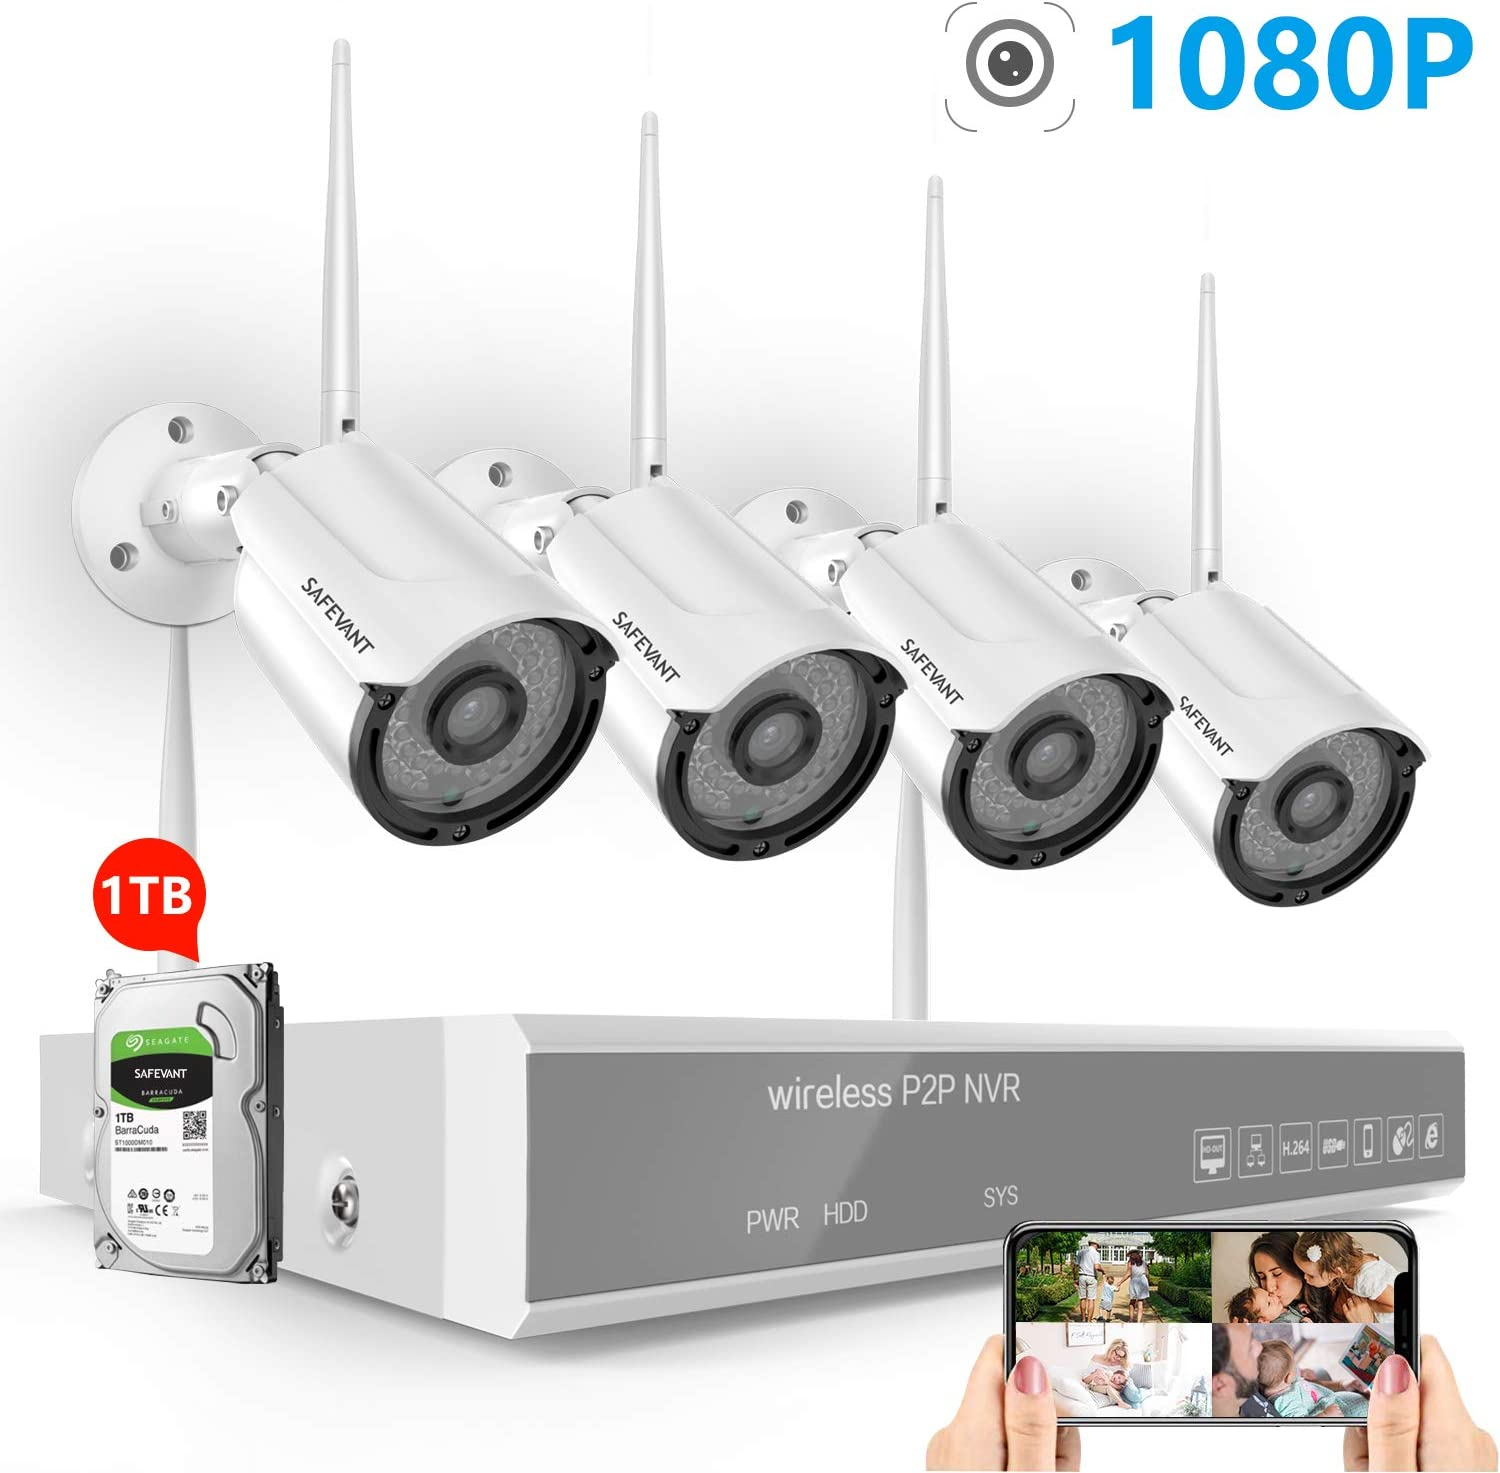 Full HD 1080P Security Camera System Wireless with 1TB Hard Drive,SAFEVANT 8CH NVR Kits with 4PCS 2.0 MP Indoor Outdoor IP Cameras with Night Vision